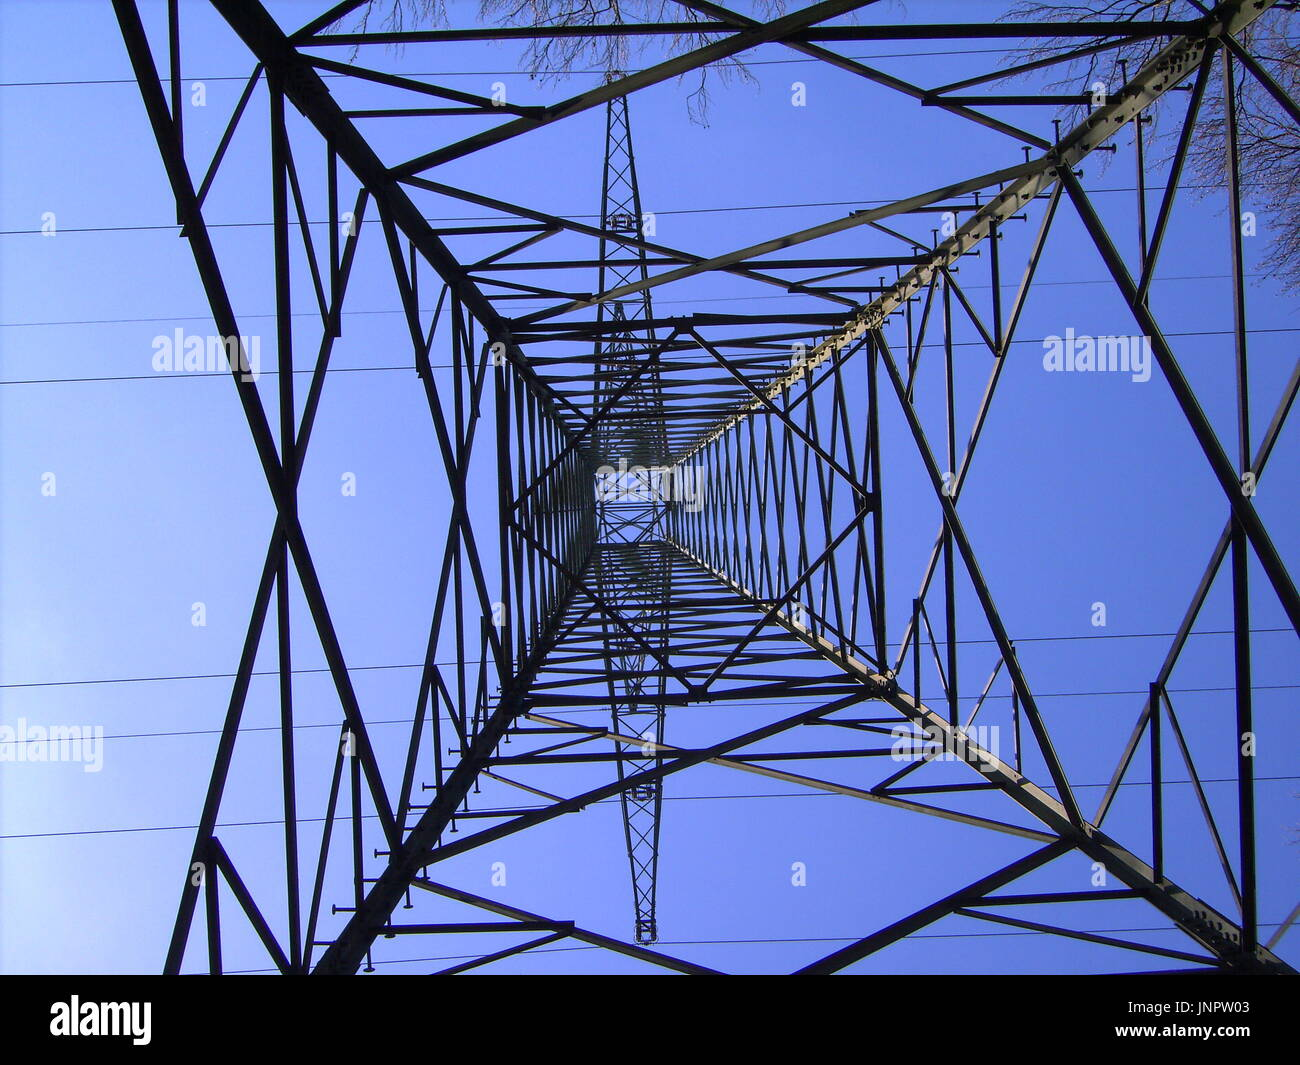 Electrical tower from above - Stock Image